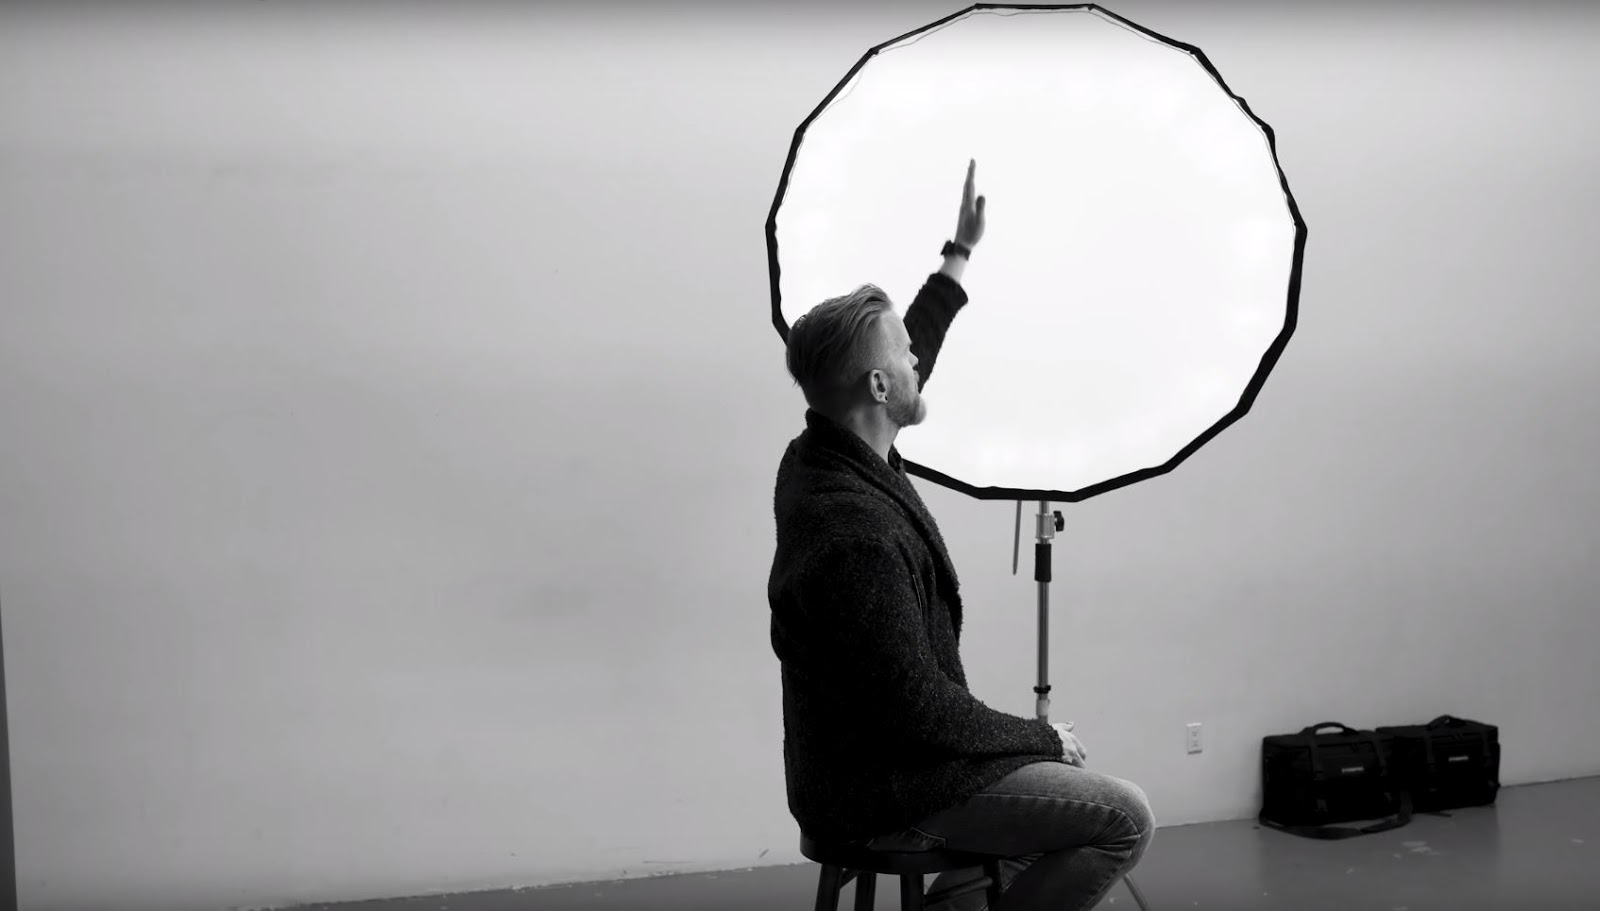 How to use STUDIO LIGHTING Tutorial + $450 Light Modifier GIVEAWAY!!!